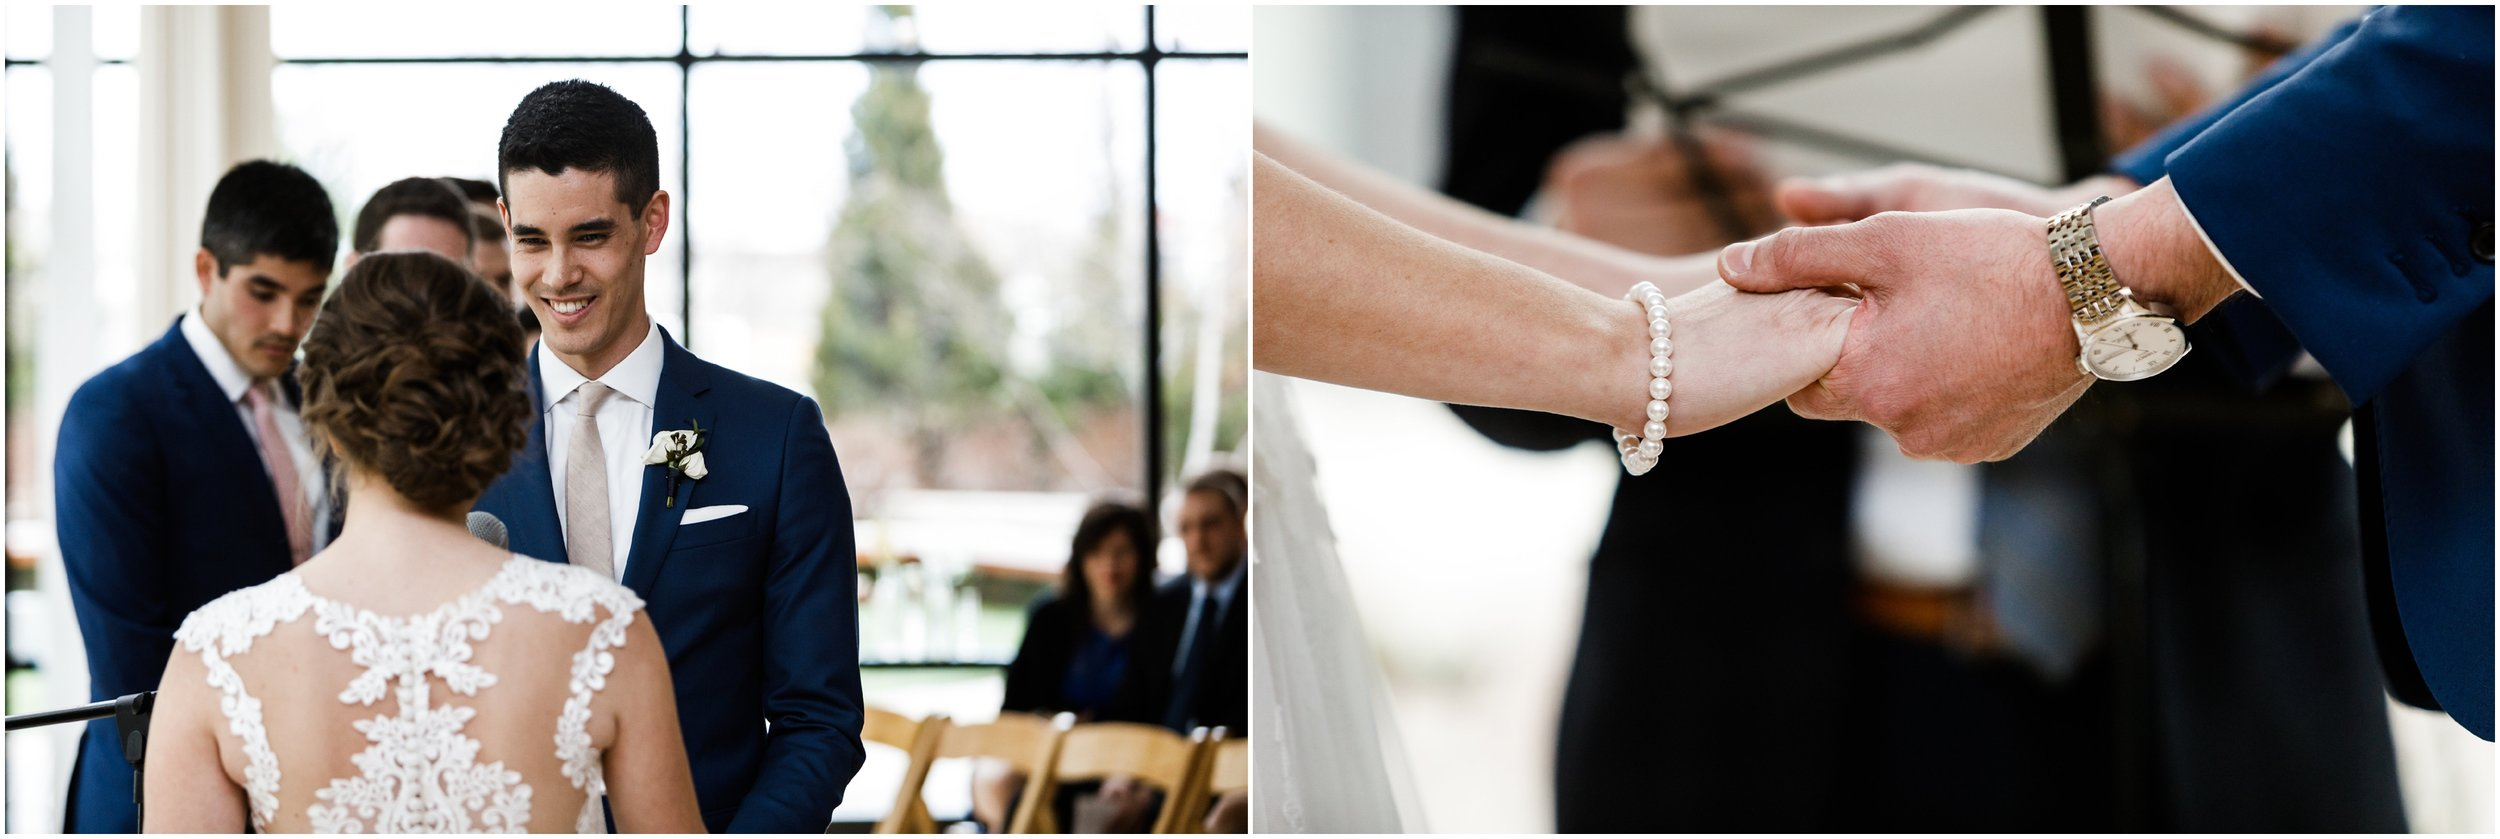 groom smiling during wedding ceremony at greenhouse loft in Chic